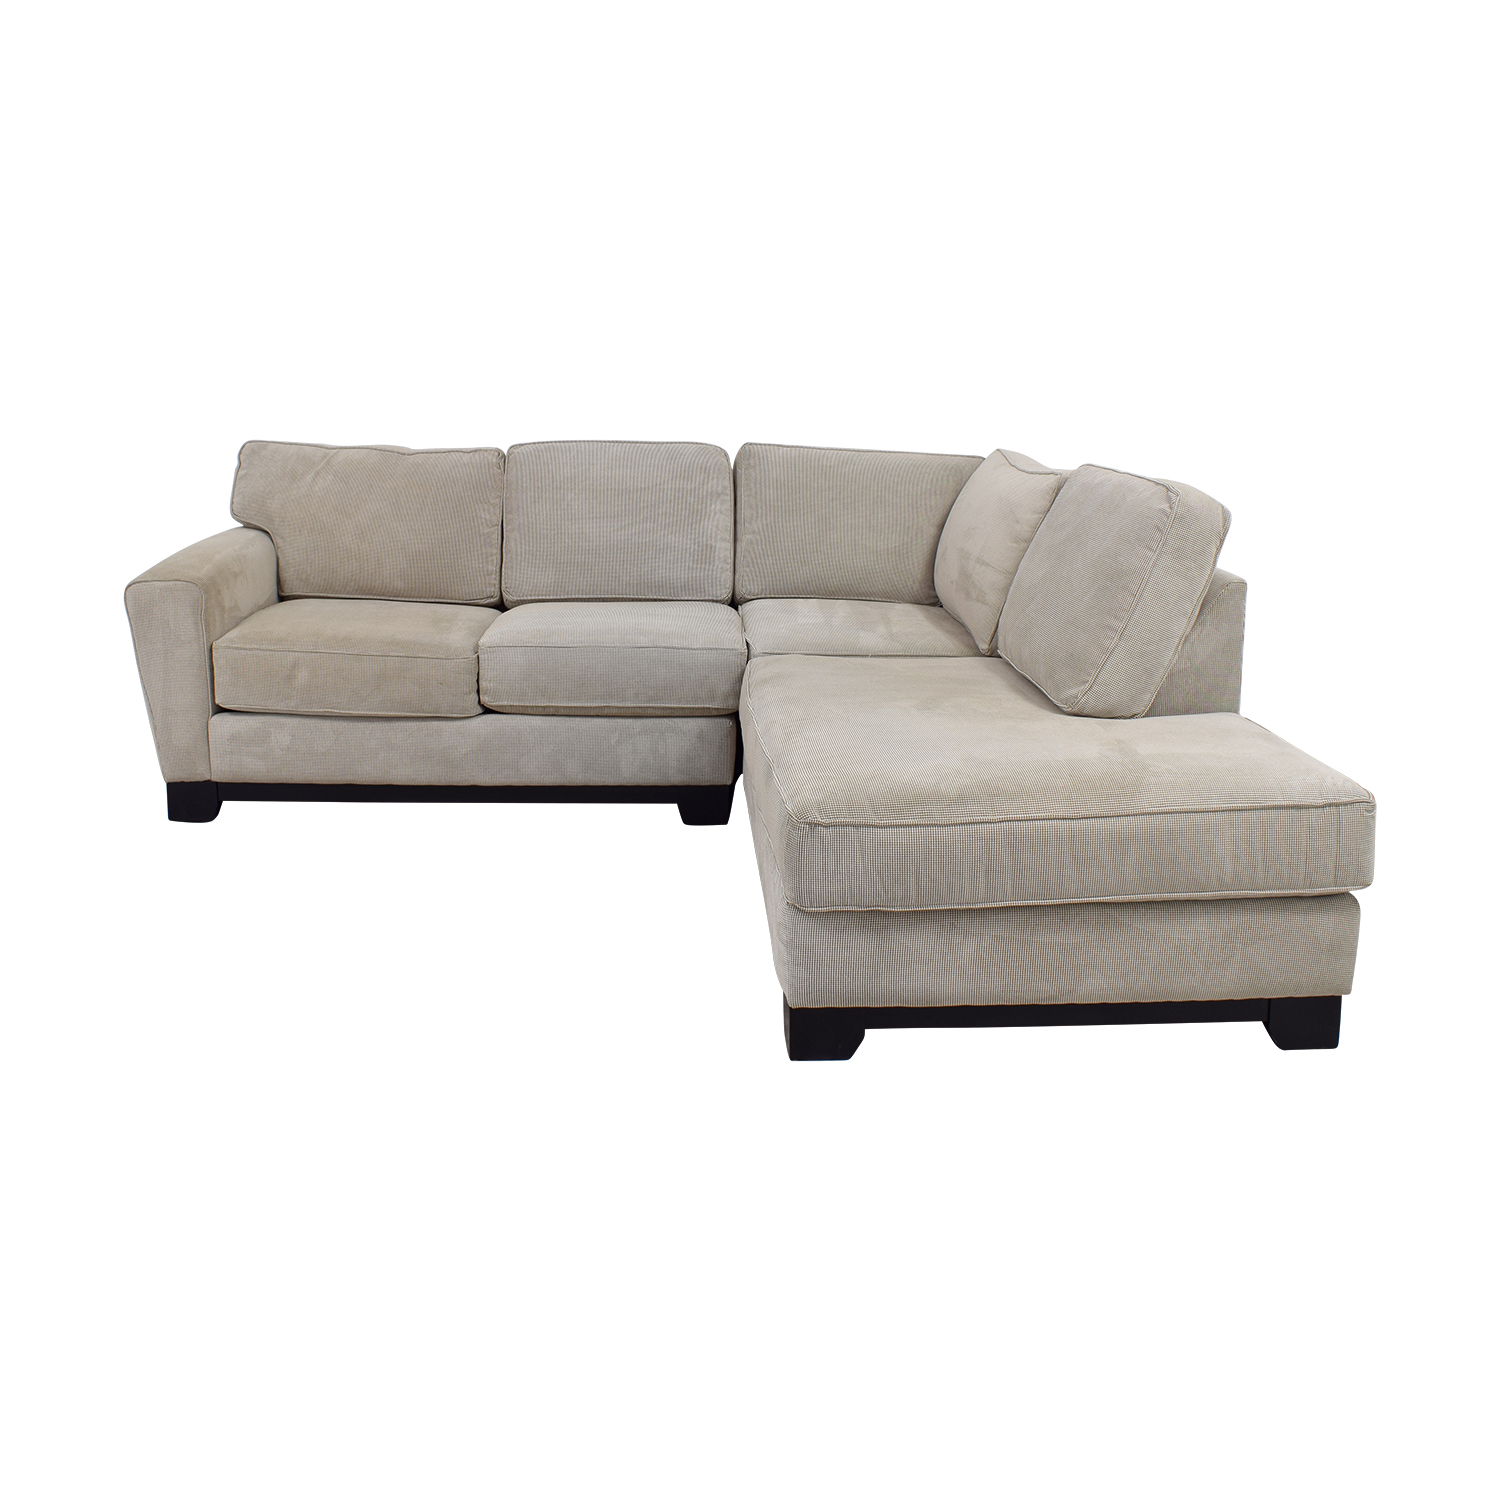 84% OFF - Jordan\'s Furniture Jordan\'s Furniture Beige L-Shaped Sectional /  Sofas